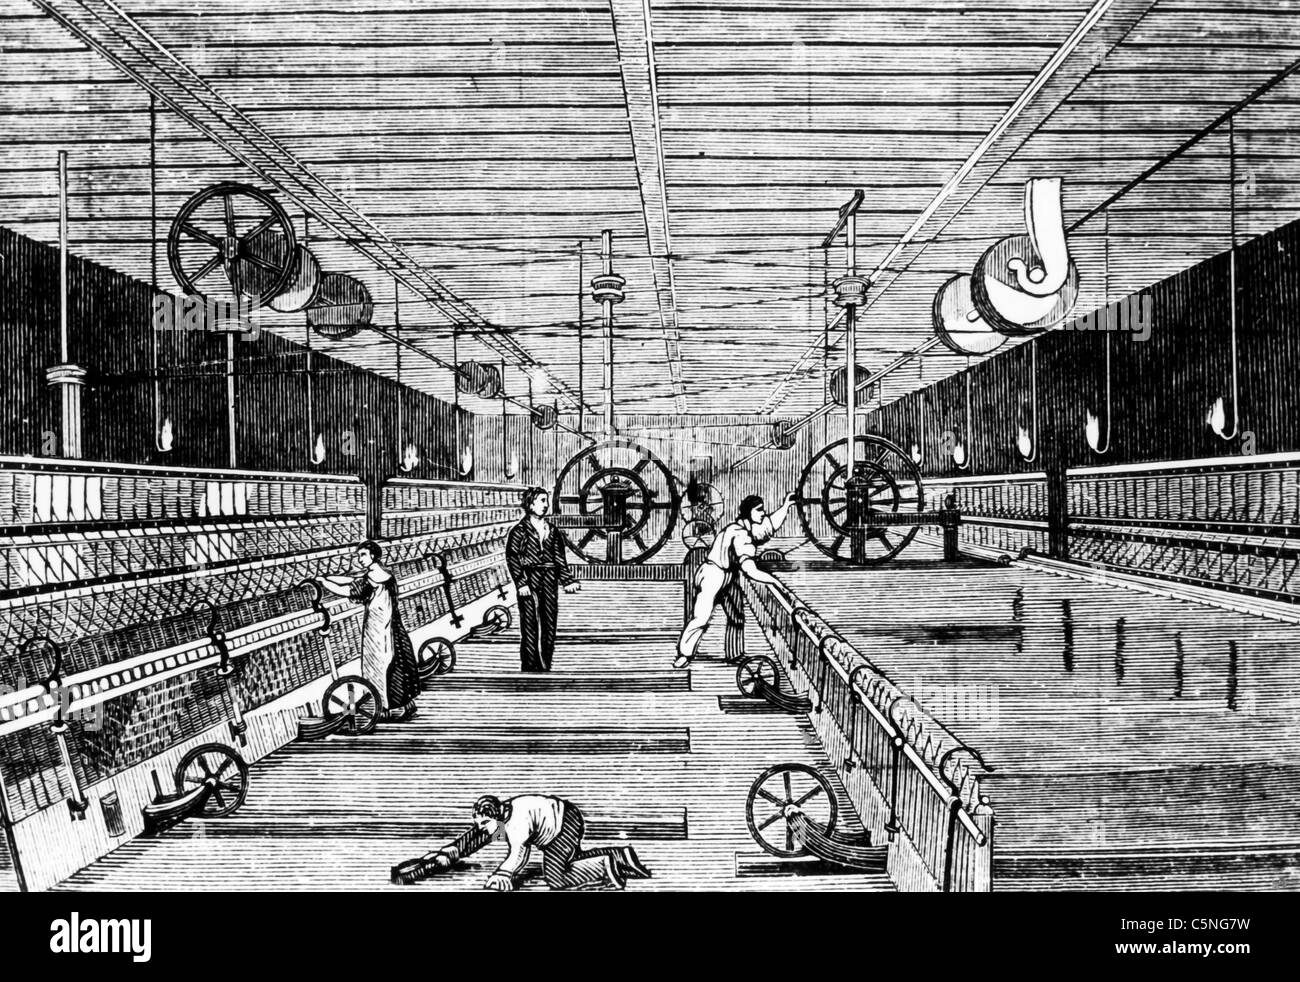 print of a textile mill, France, 700 ' - Stock Image